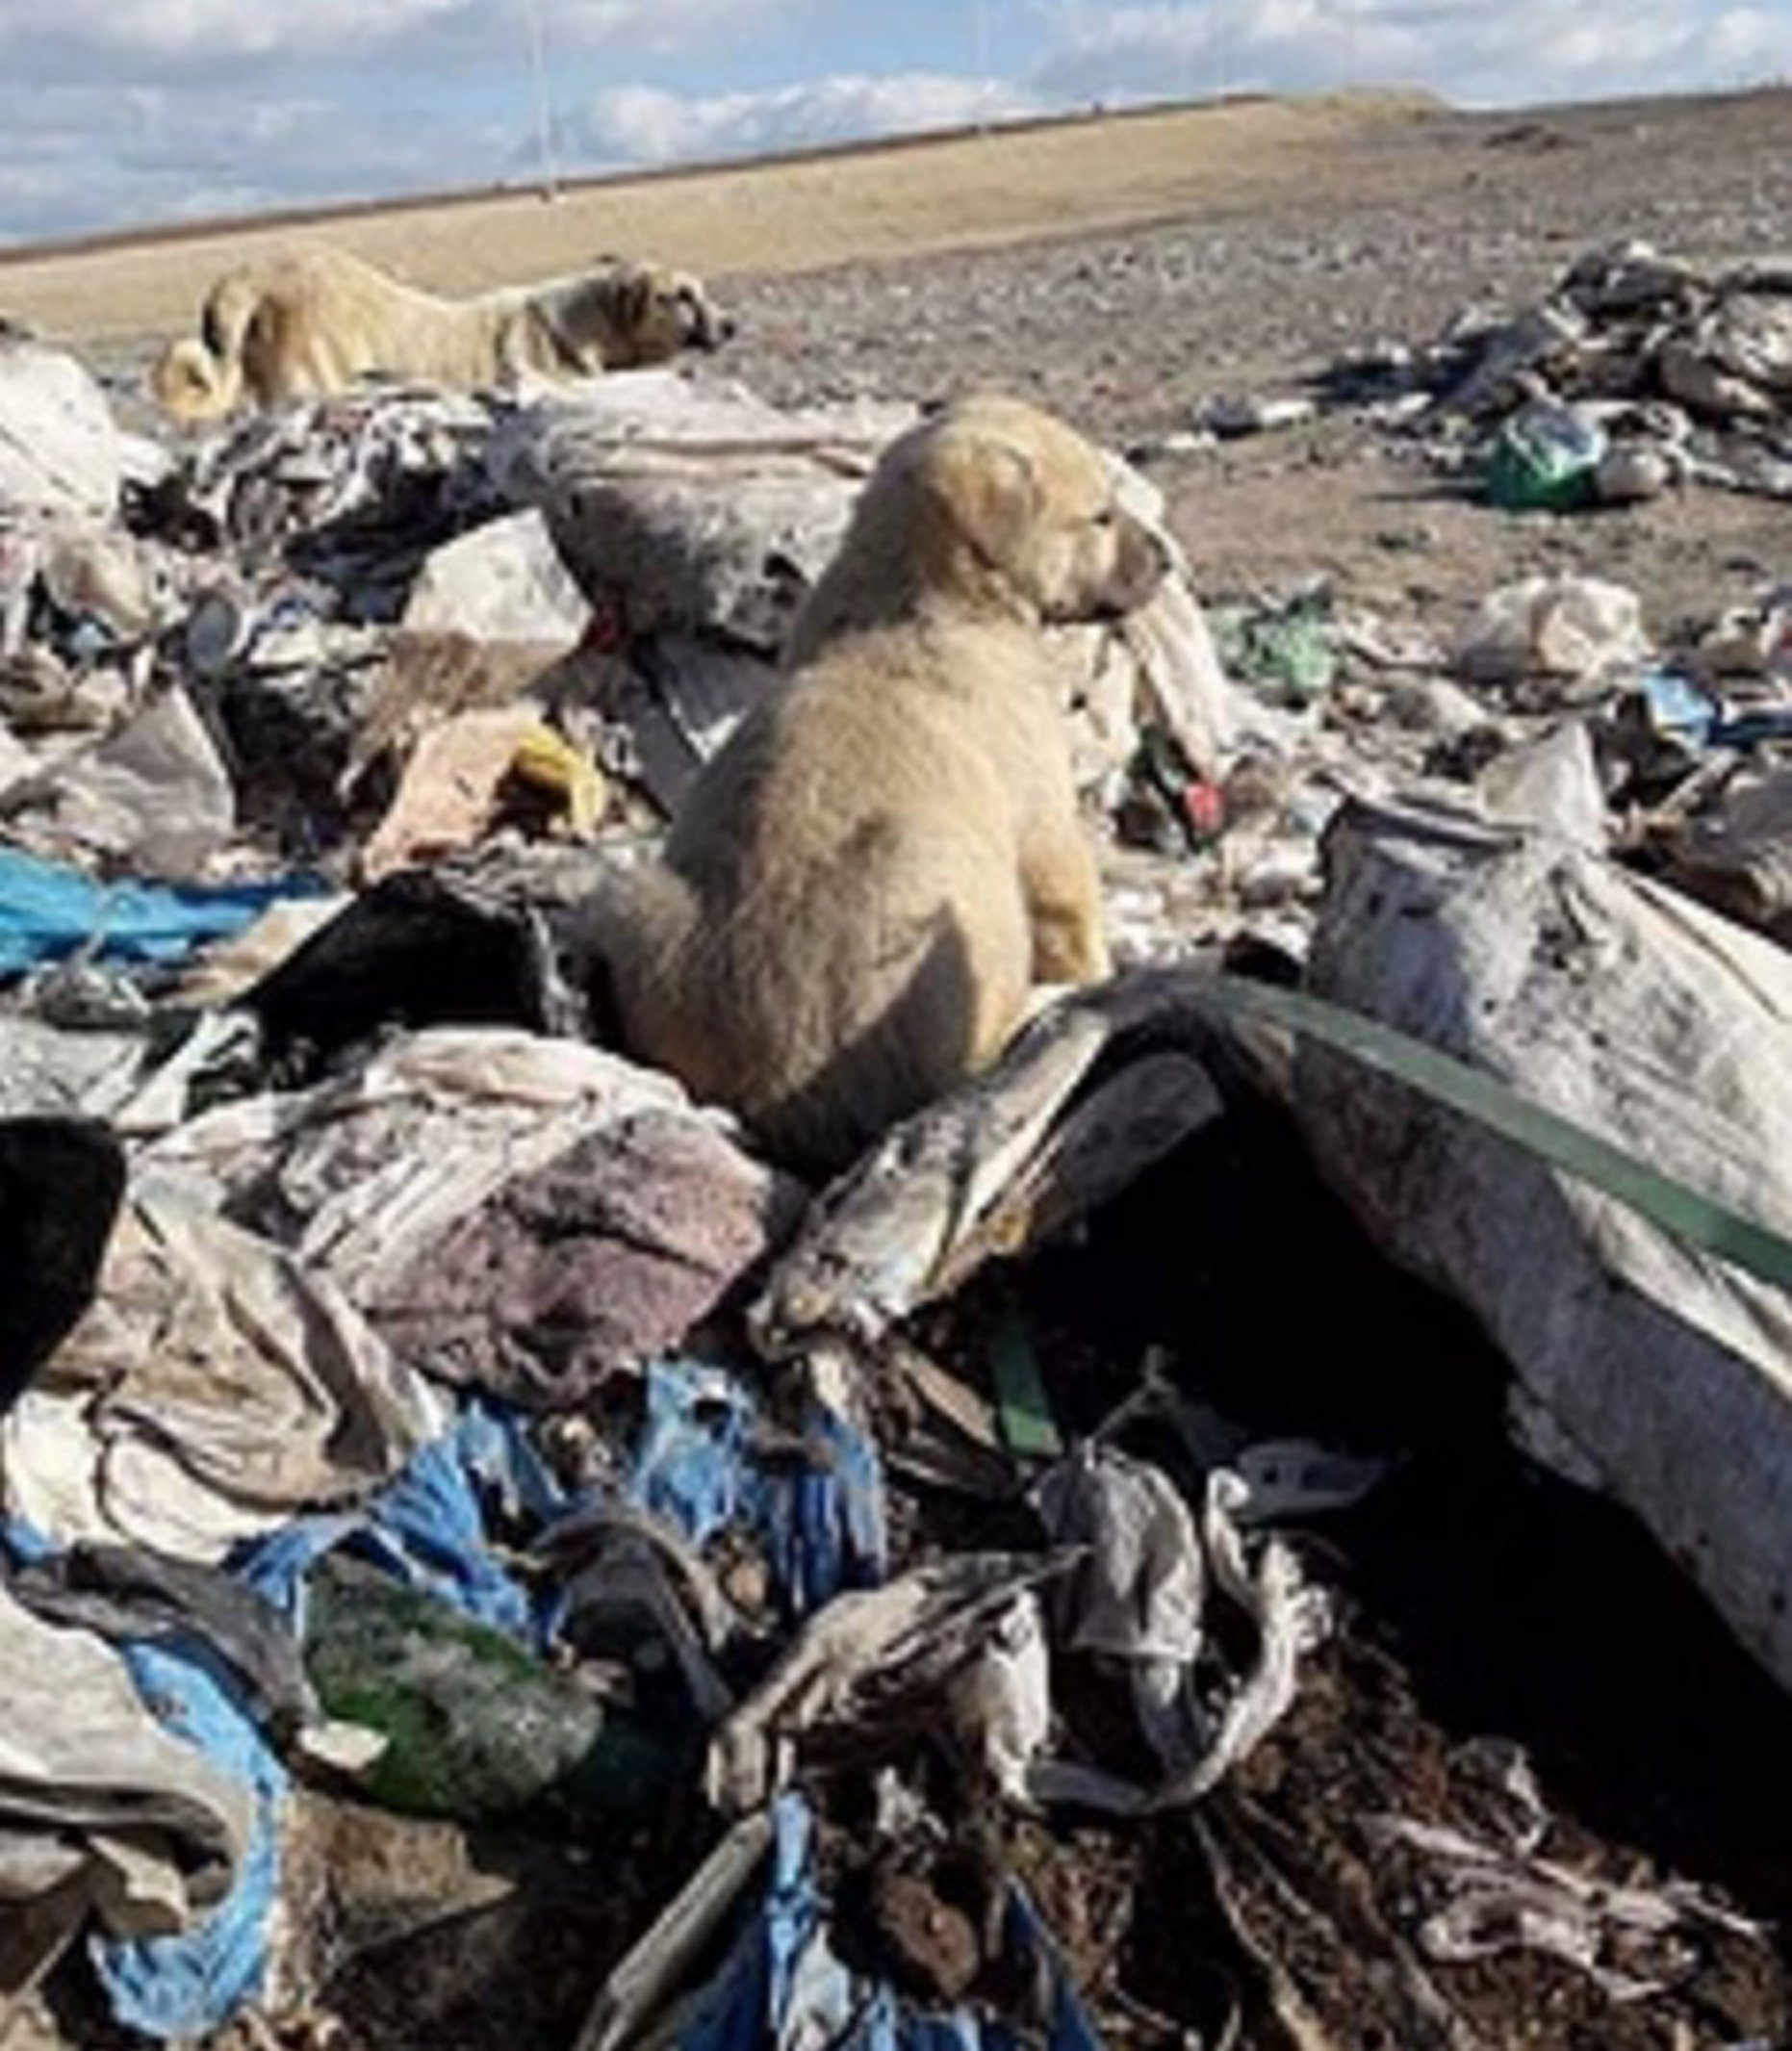 PICS BY RESCUERS WITHOUT BORDERS / CATERS NEWS - (PICTURED: Some of the scenes from the landfills in Corum, Turkey, there are claimed to be 800 dogs roaming there - many the nonprofit feed if they cant help them at the time - they are limited by funds) - An abandoned dog who was found waiting to die in mounds of trash is recovering as part of rescue efforts to save more than 800 landfill dogs from freezing to death. Kratos, an eight-year-old Kangal Shepherd, was severely dehydrated, malnourished with protruding ribs and spine, open sores, and hair loss upon his discovery in Corum, Turkey. Collapsed in a muddy hole that served as a small wind shelter among the piles of trash, bearing a defeated look, this dog is just one of 800 Rescuers Without Borders regularly see.They believe the problem stems from irresponsible owners not neutering and spaying pets, as well as the animals being discarded after they are no longer needed for work. - SEE CATERS COPY